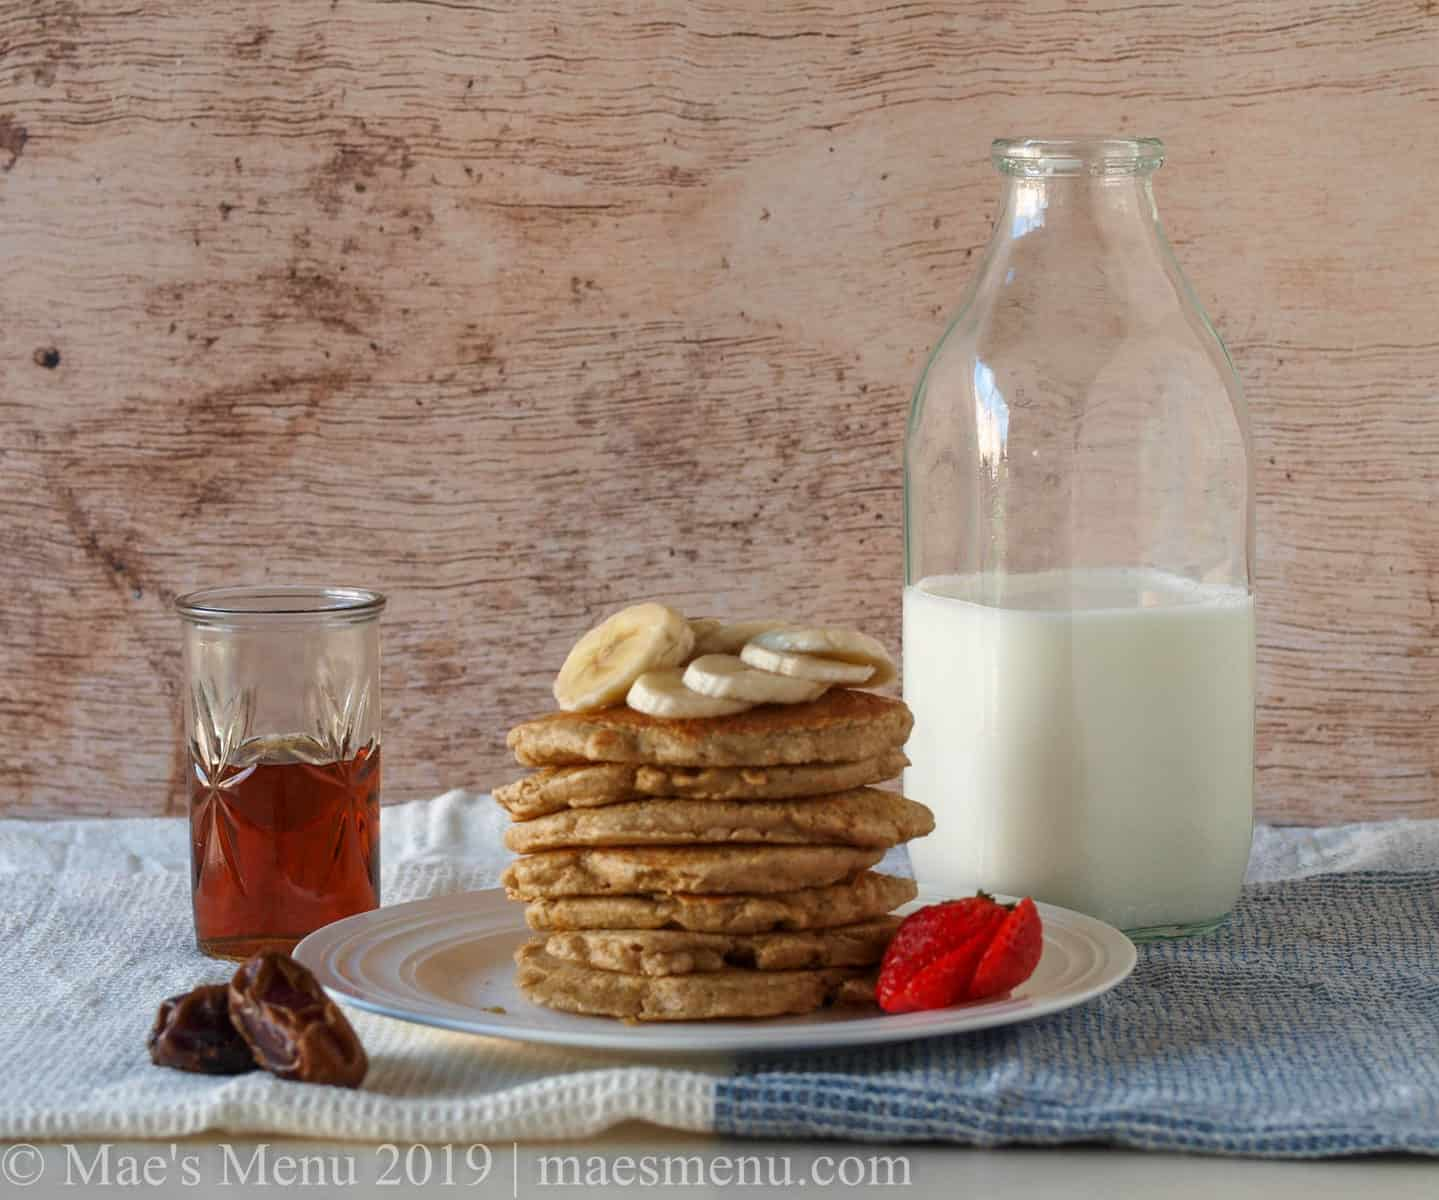 A plate with a stack of oatmeal blender pancakes. On top of the pancakes sits bananas and next to the pancakes sit strawberries. Next to the plate are dates, a cup of maple syrup, and a bottle of milk